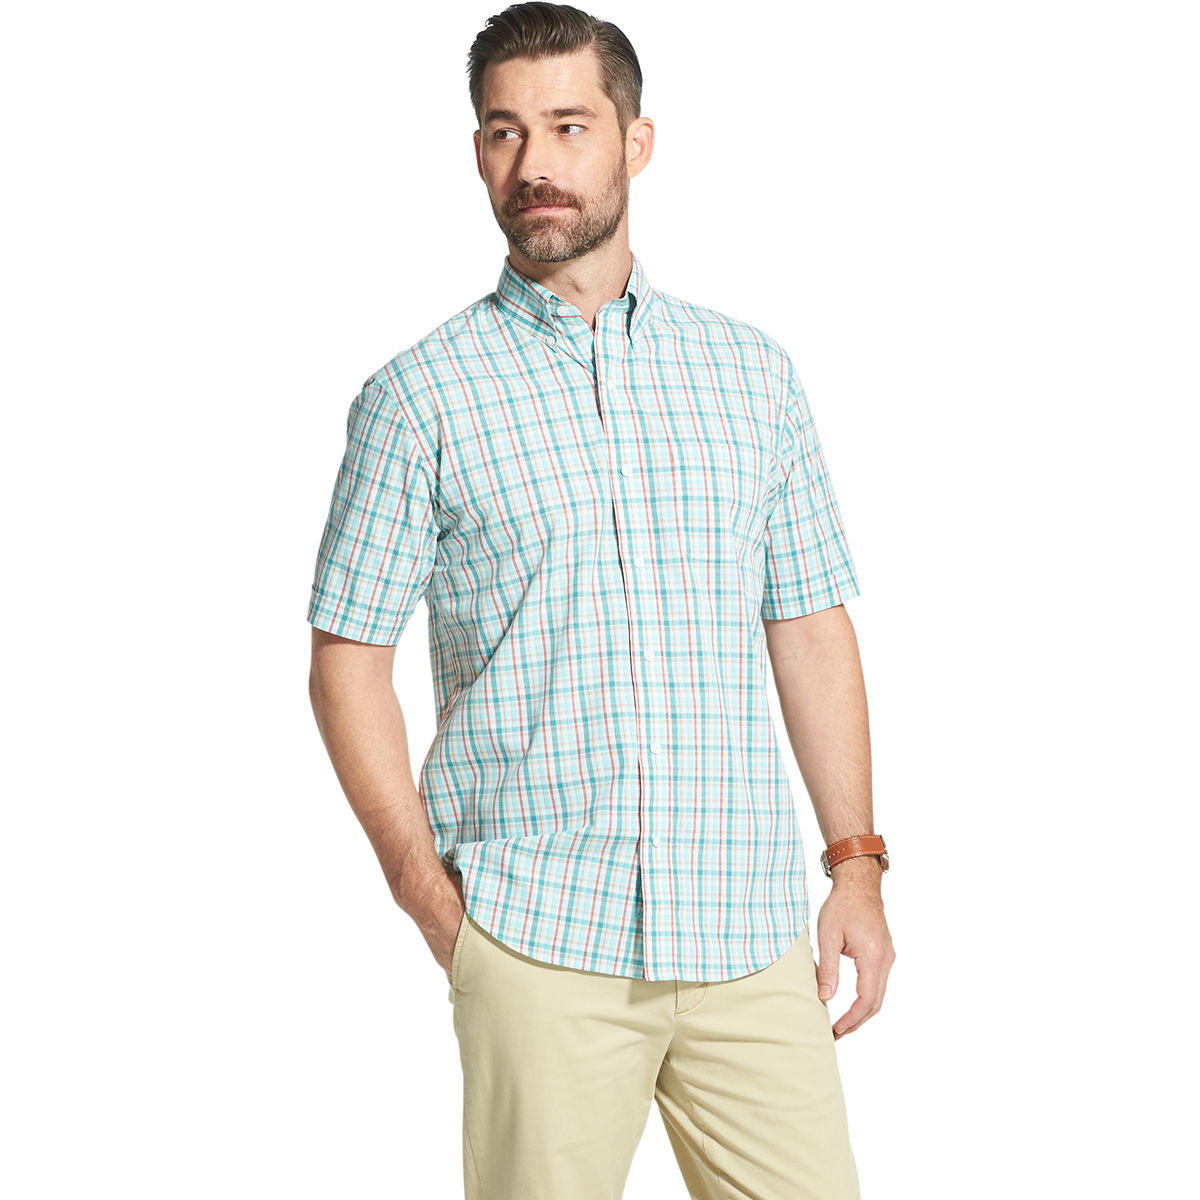 Arrow Men's Hamilton Poplin Plaid Short-Sleeve Button Down Shirt - Green, XL